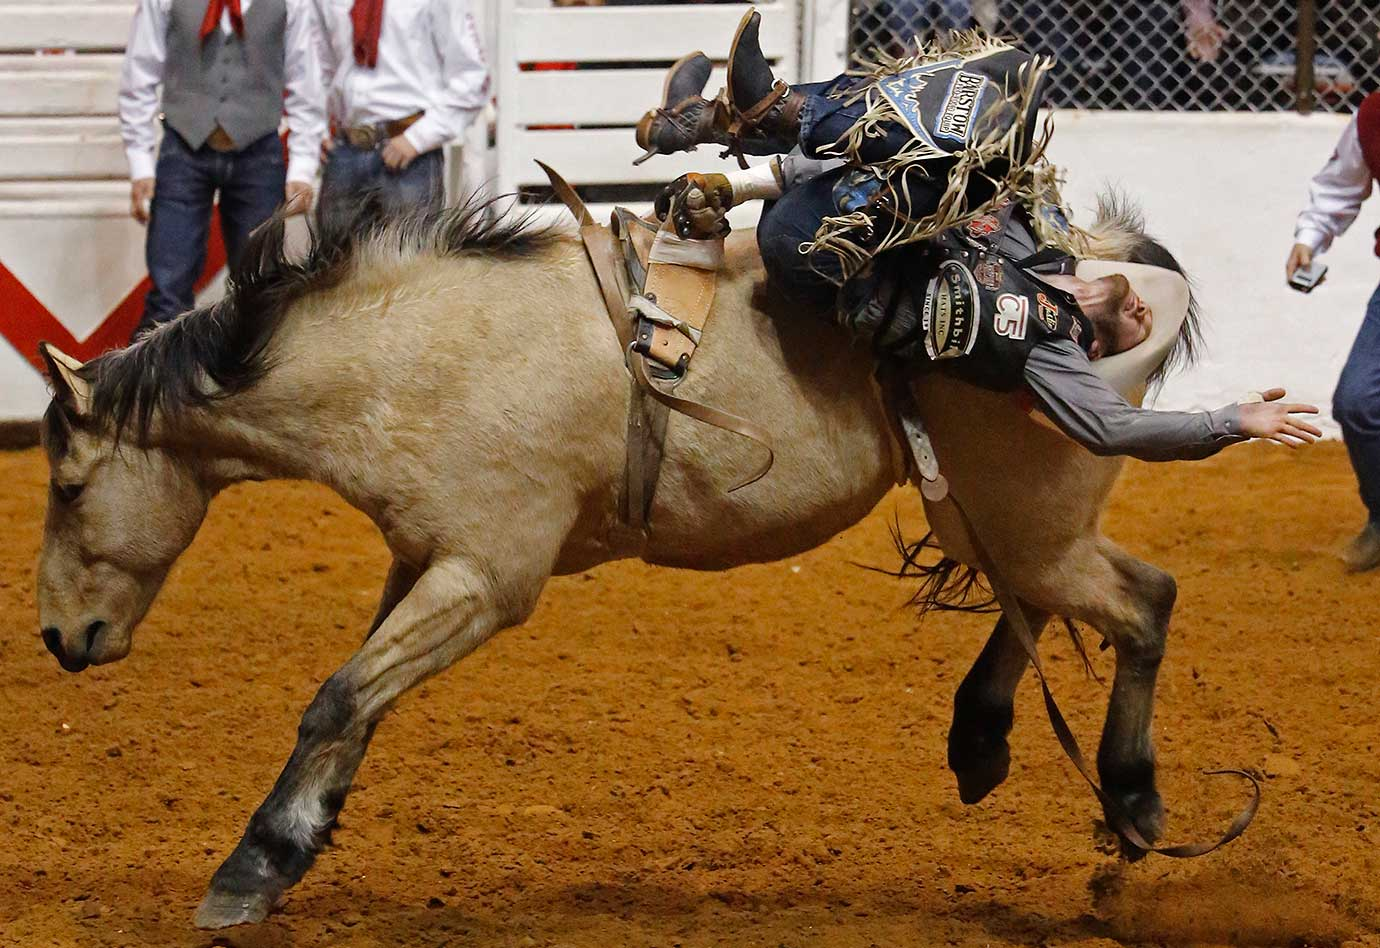 Luke Creasy hangs on to Assault for a score of 84.50 in bareback during the Super Shootout at the Fort Worth Stock Show Rodeo in Texas.